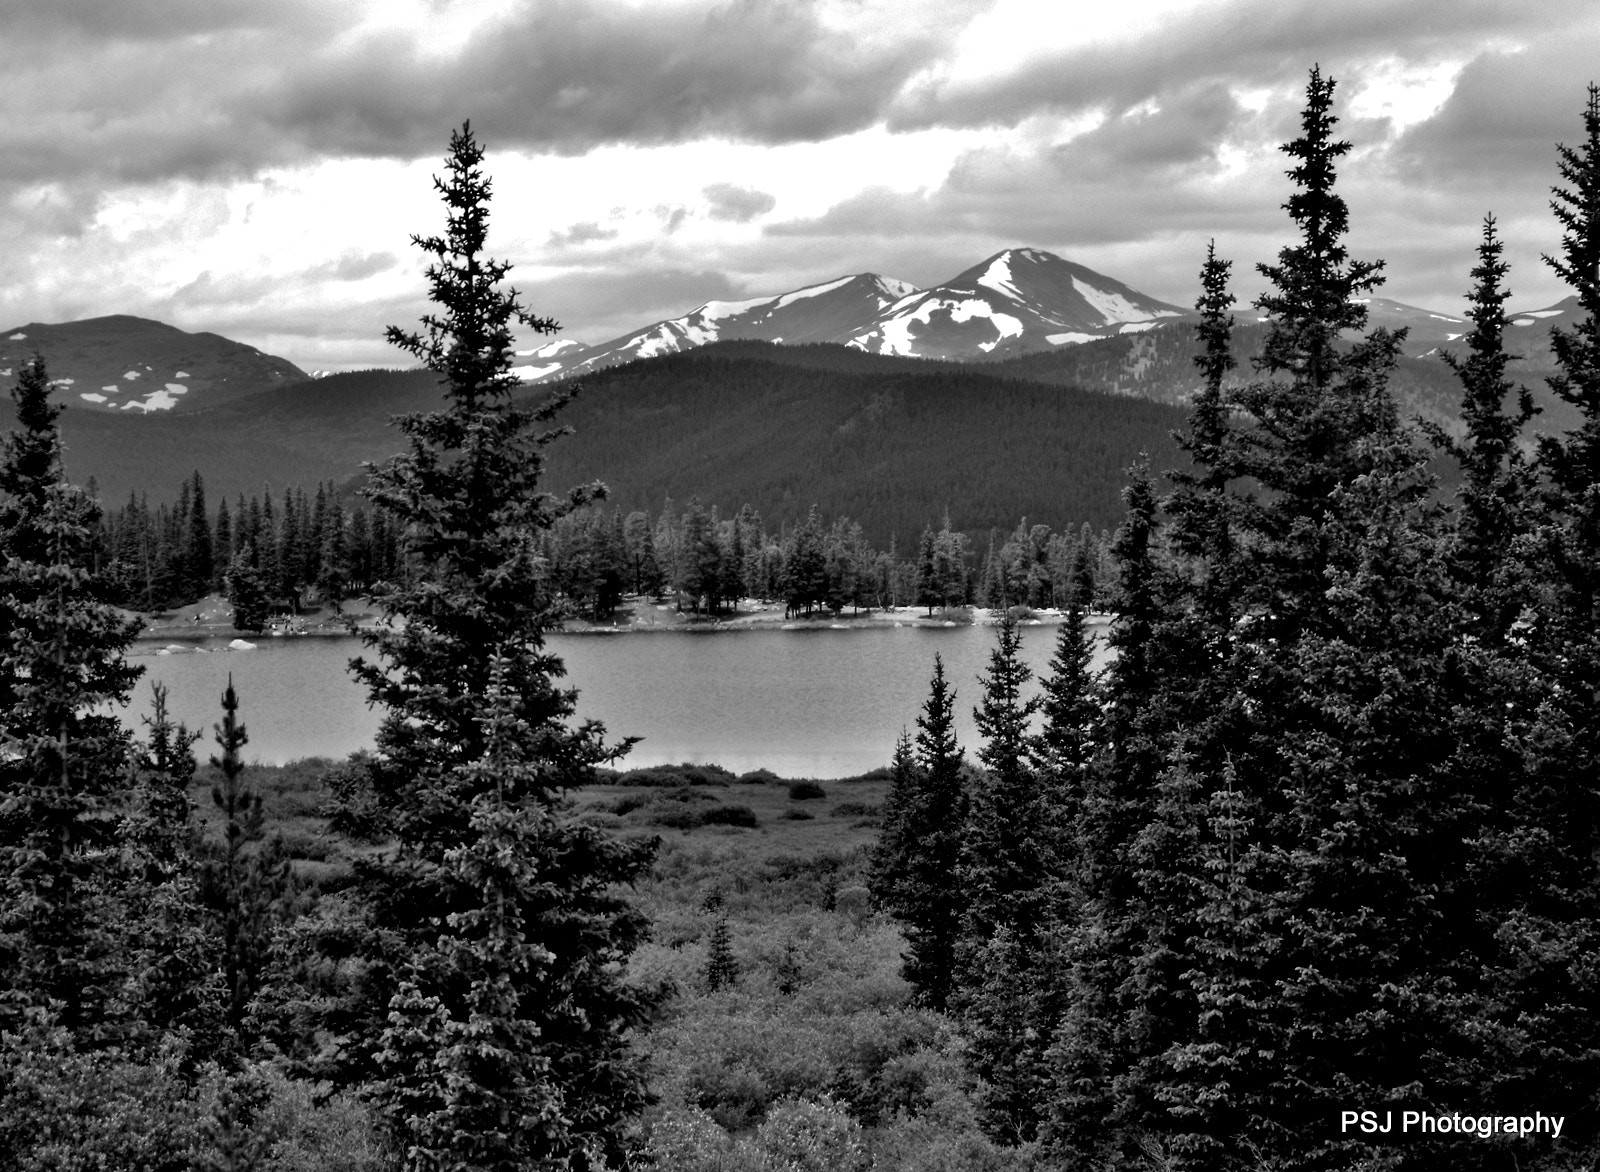 Photograph Echo Lake in B&W by Pam Jones on 500px